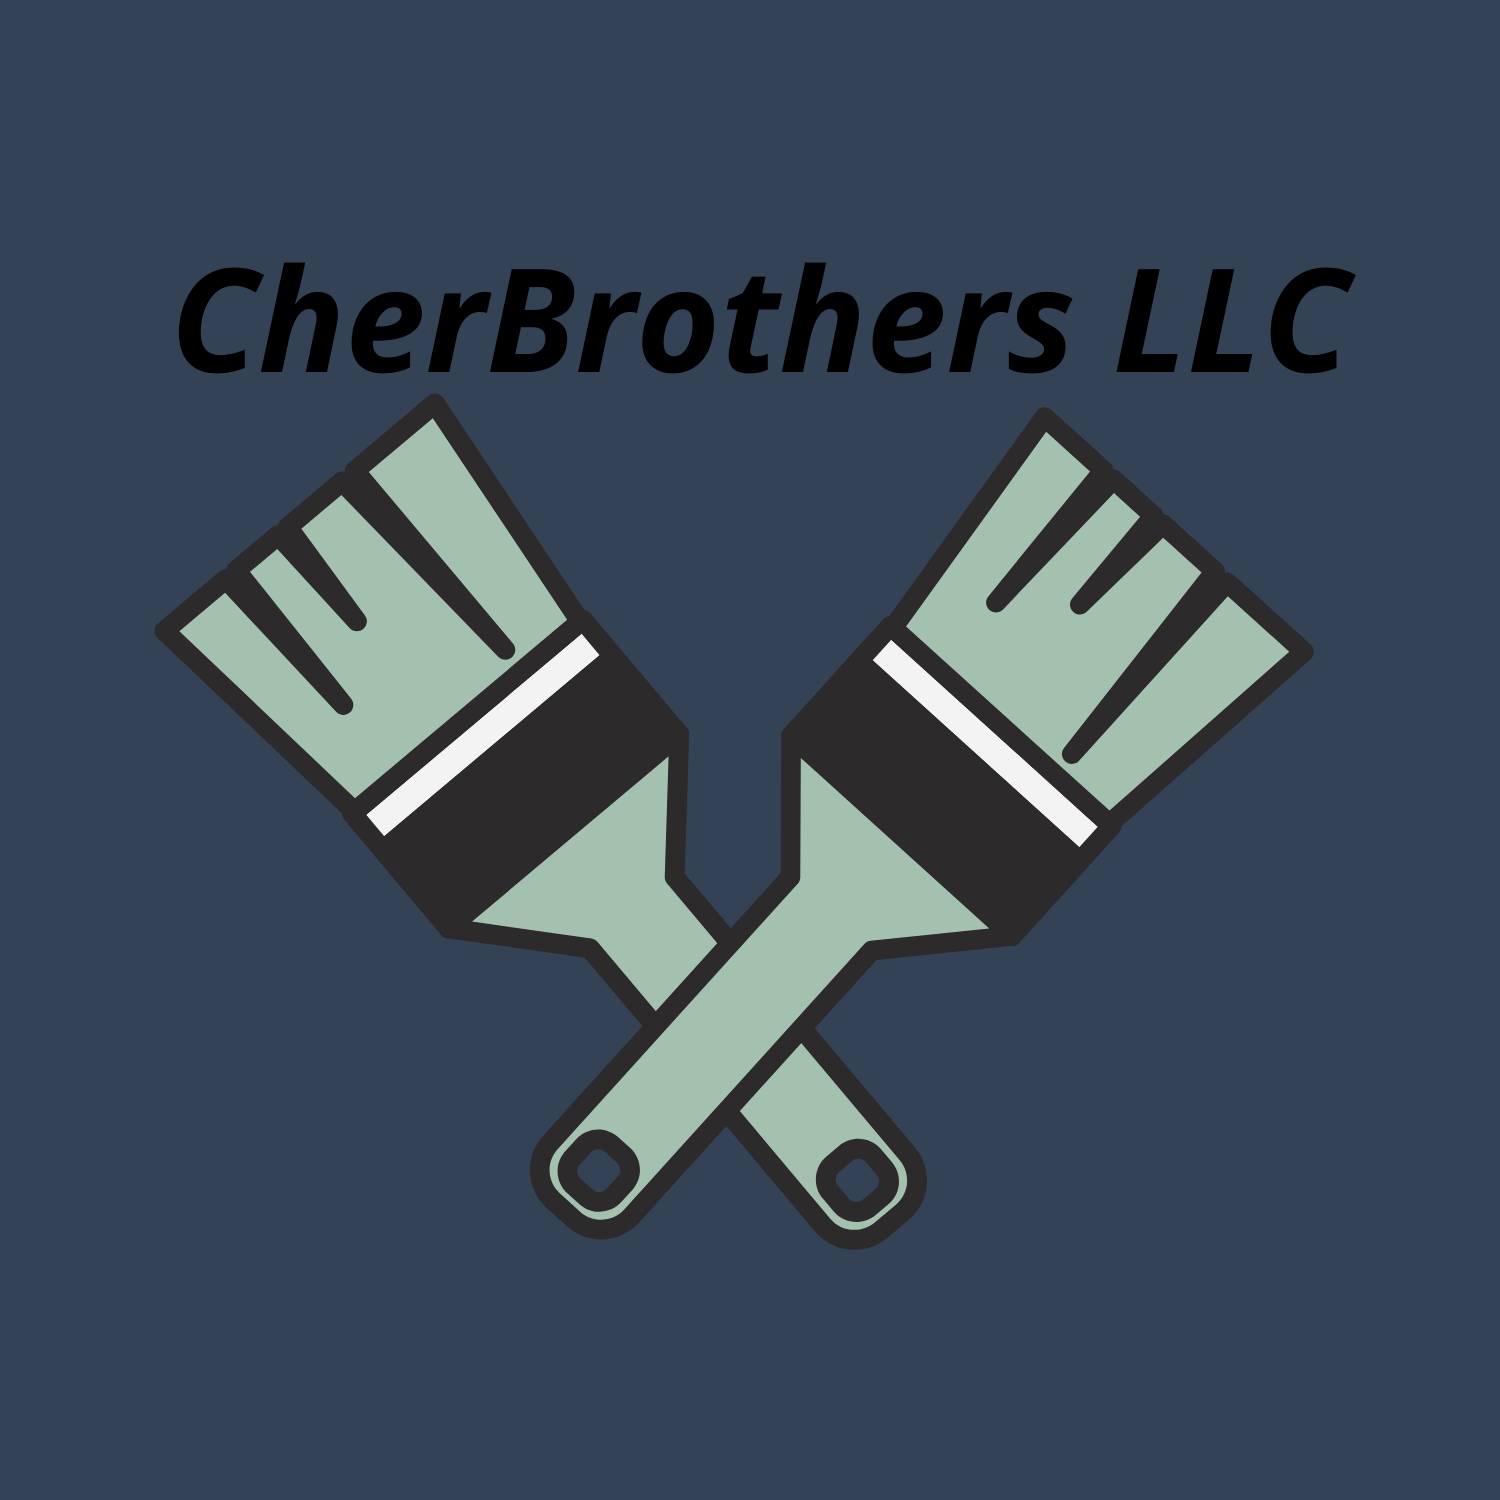 Cher Brothers LLC